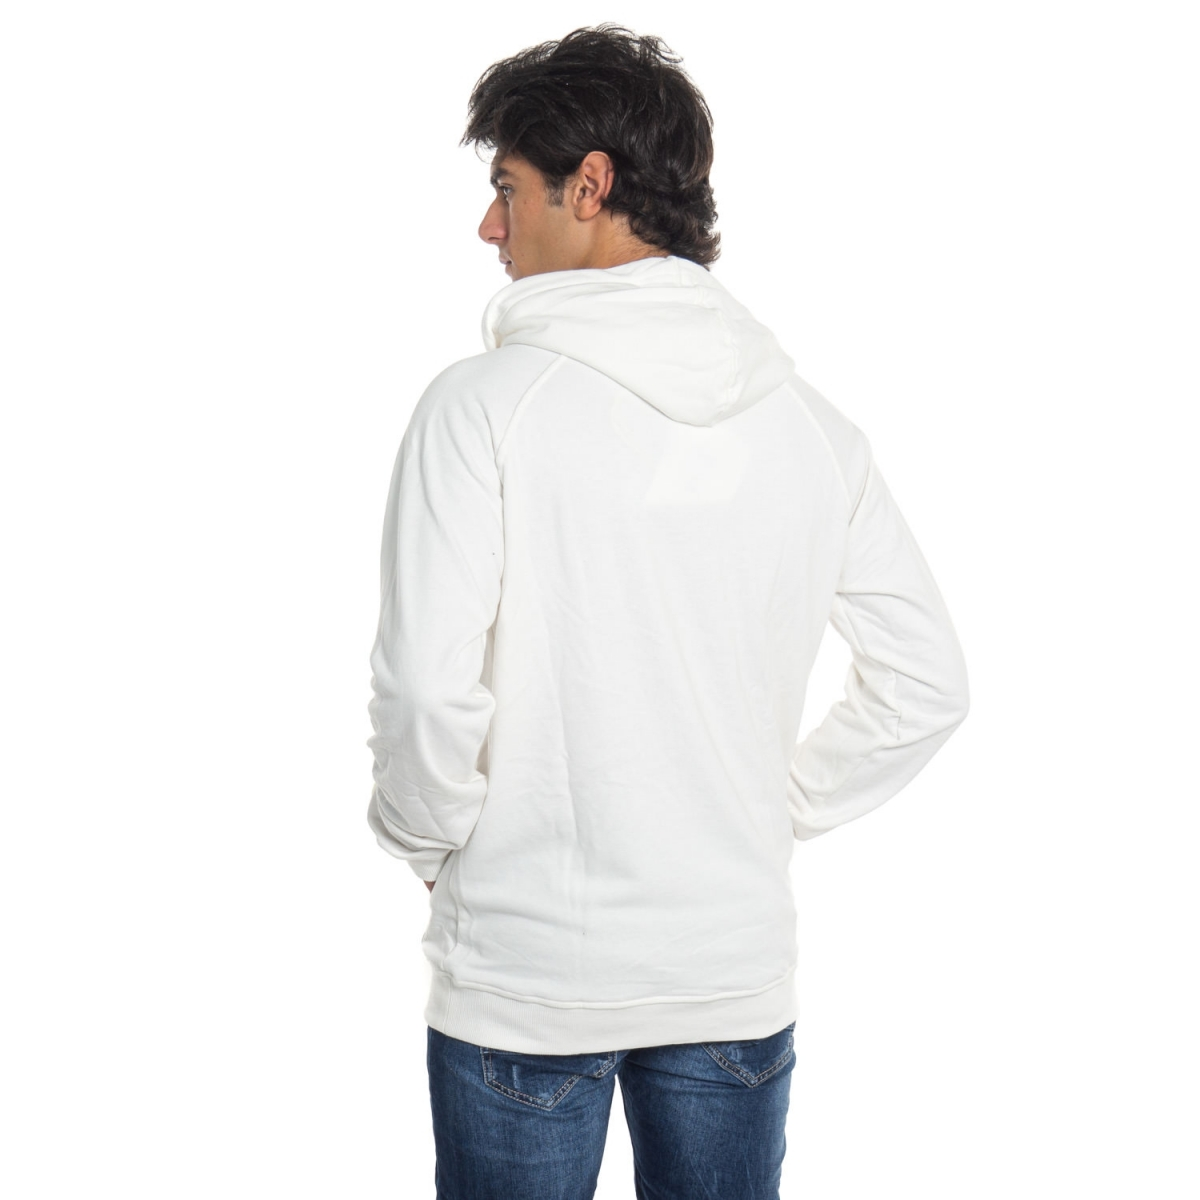 clothing Sweatshirts men Felpa NBB37959 LANDEK PARK Cafedelmar Shop